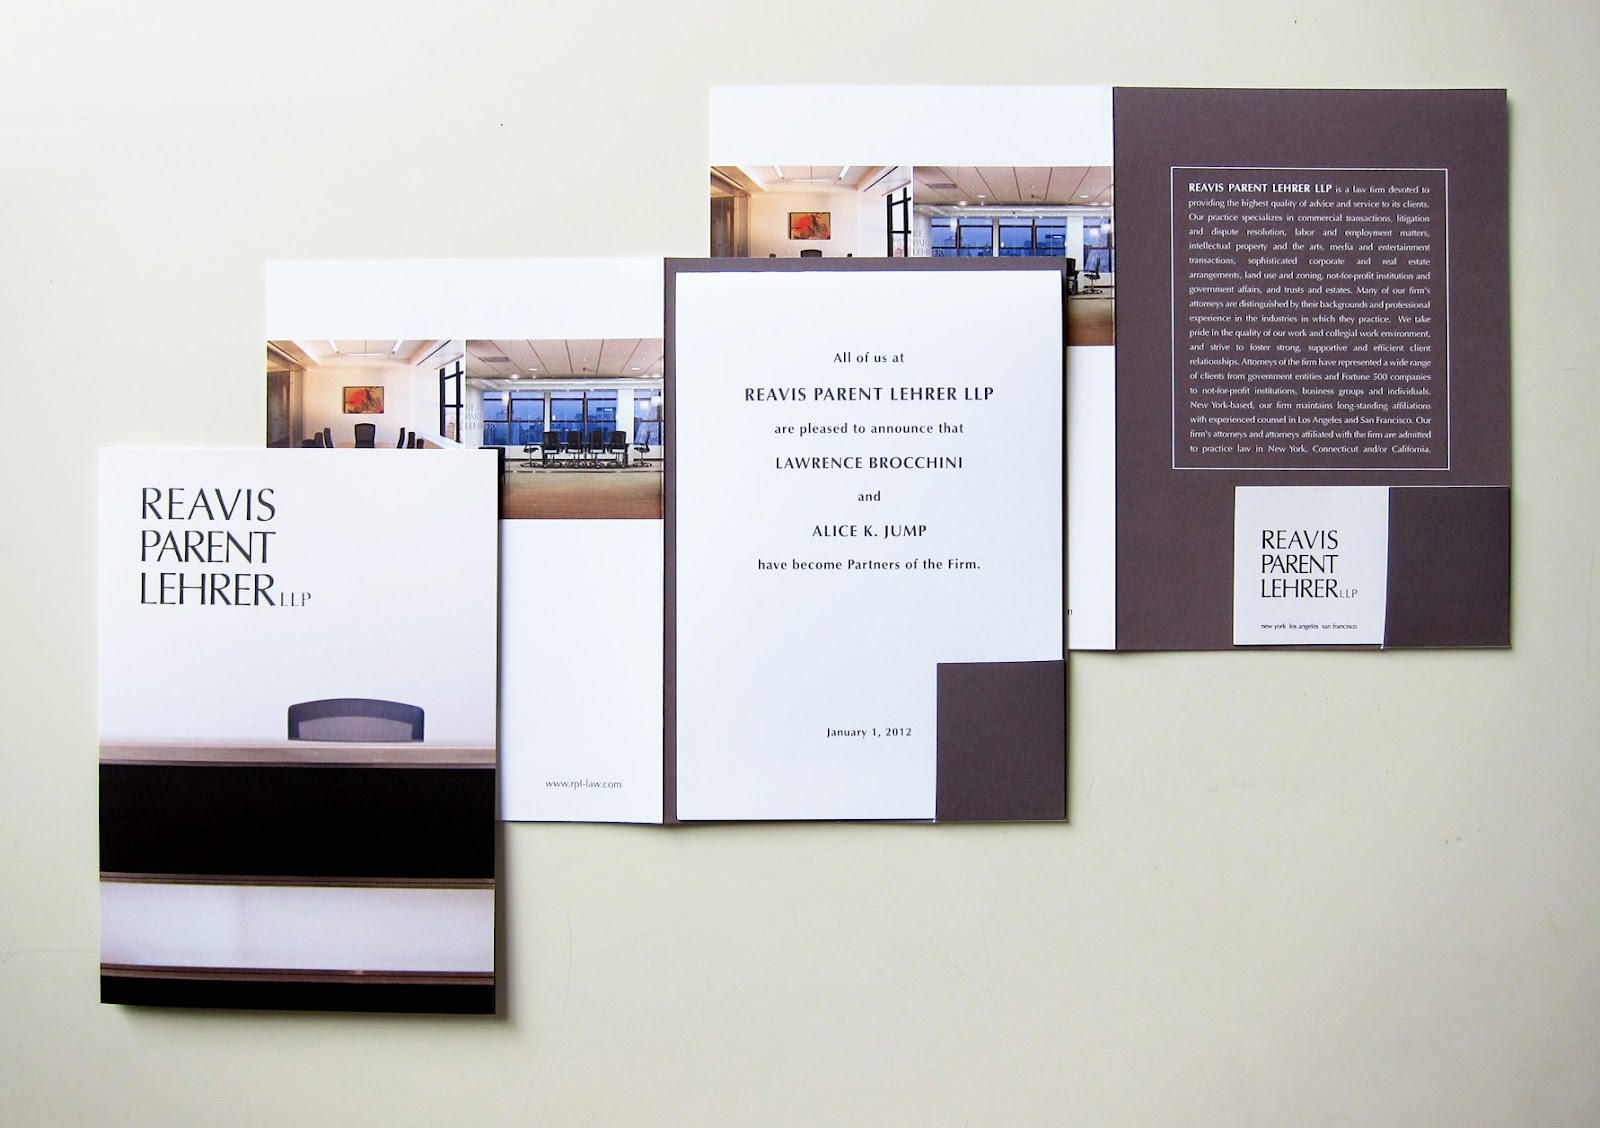 Lehrer architects office design Los Angeles We Just Designed Additional Marketing Materials For One Of Our Longstanding Clients Reavis Parent Lehrer Llp Initiated By Mads Office Design At 41 Fireplace Matiz Architecture And Design Mad Branding For Reavis Parent Lehrer Llp